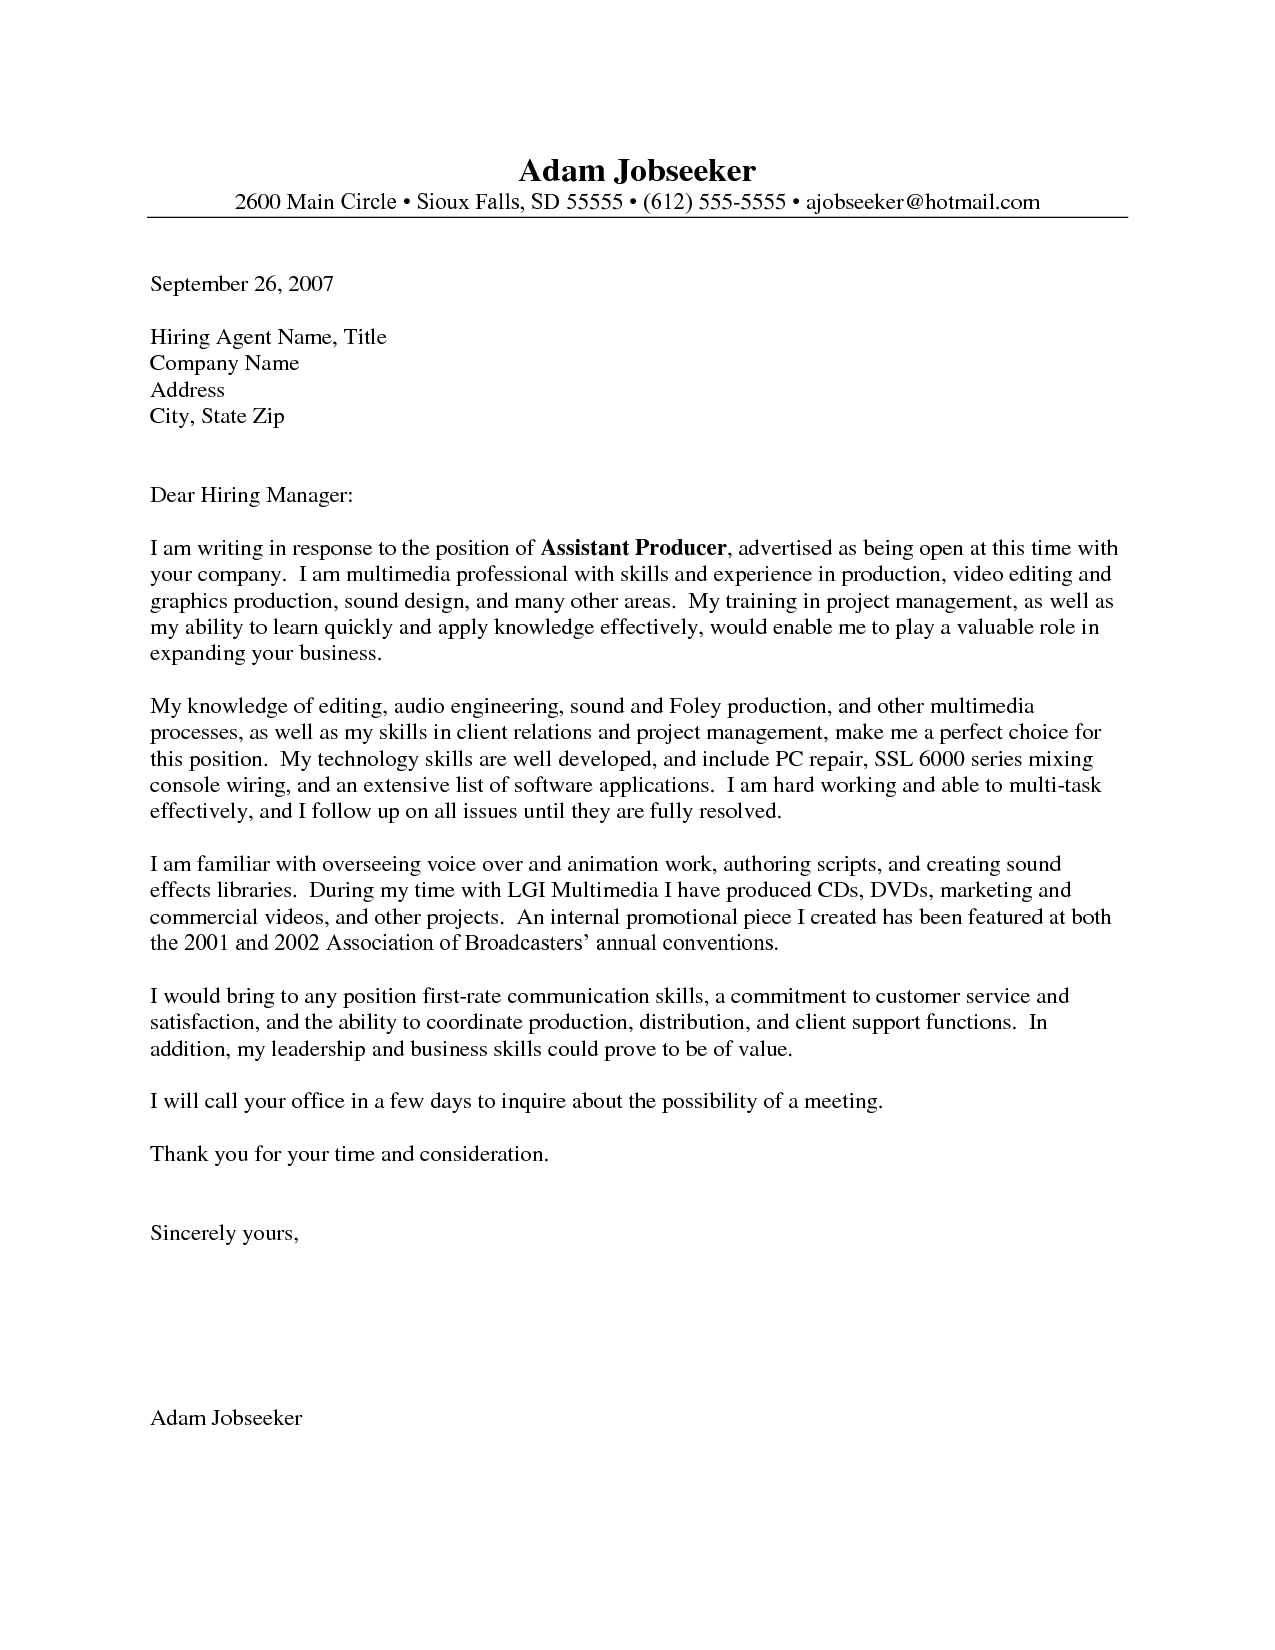 It Project Manager Cover Letter Examples Image collections - Cover ...